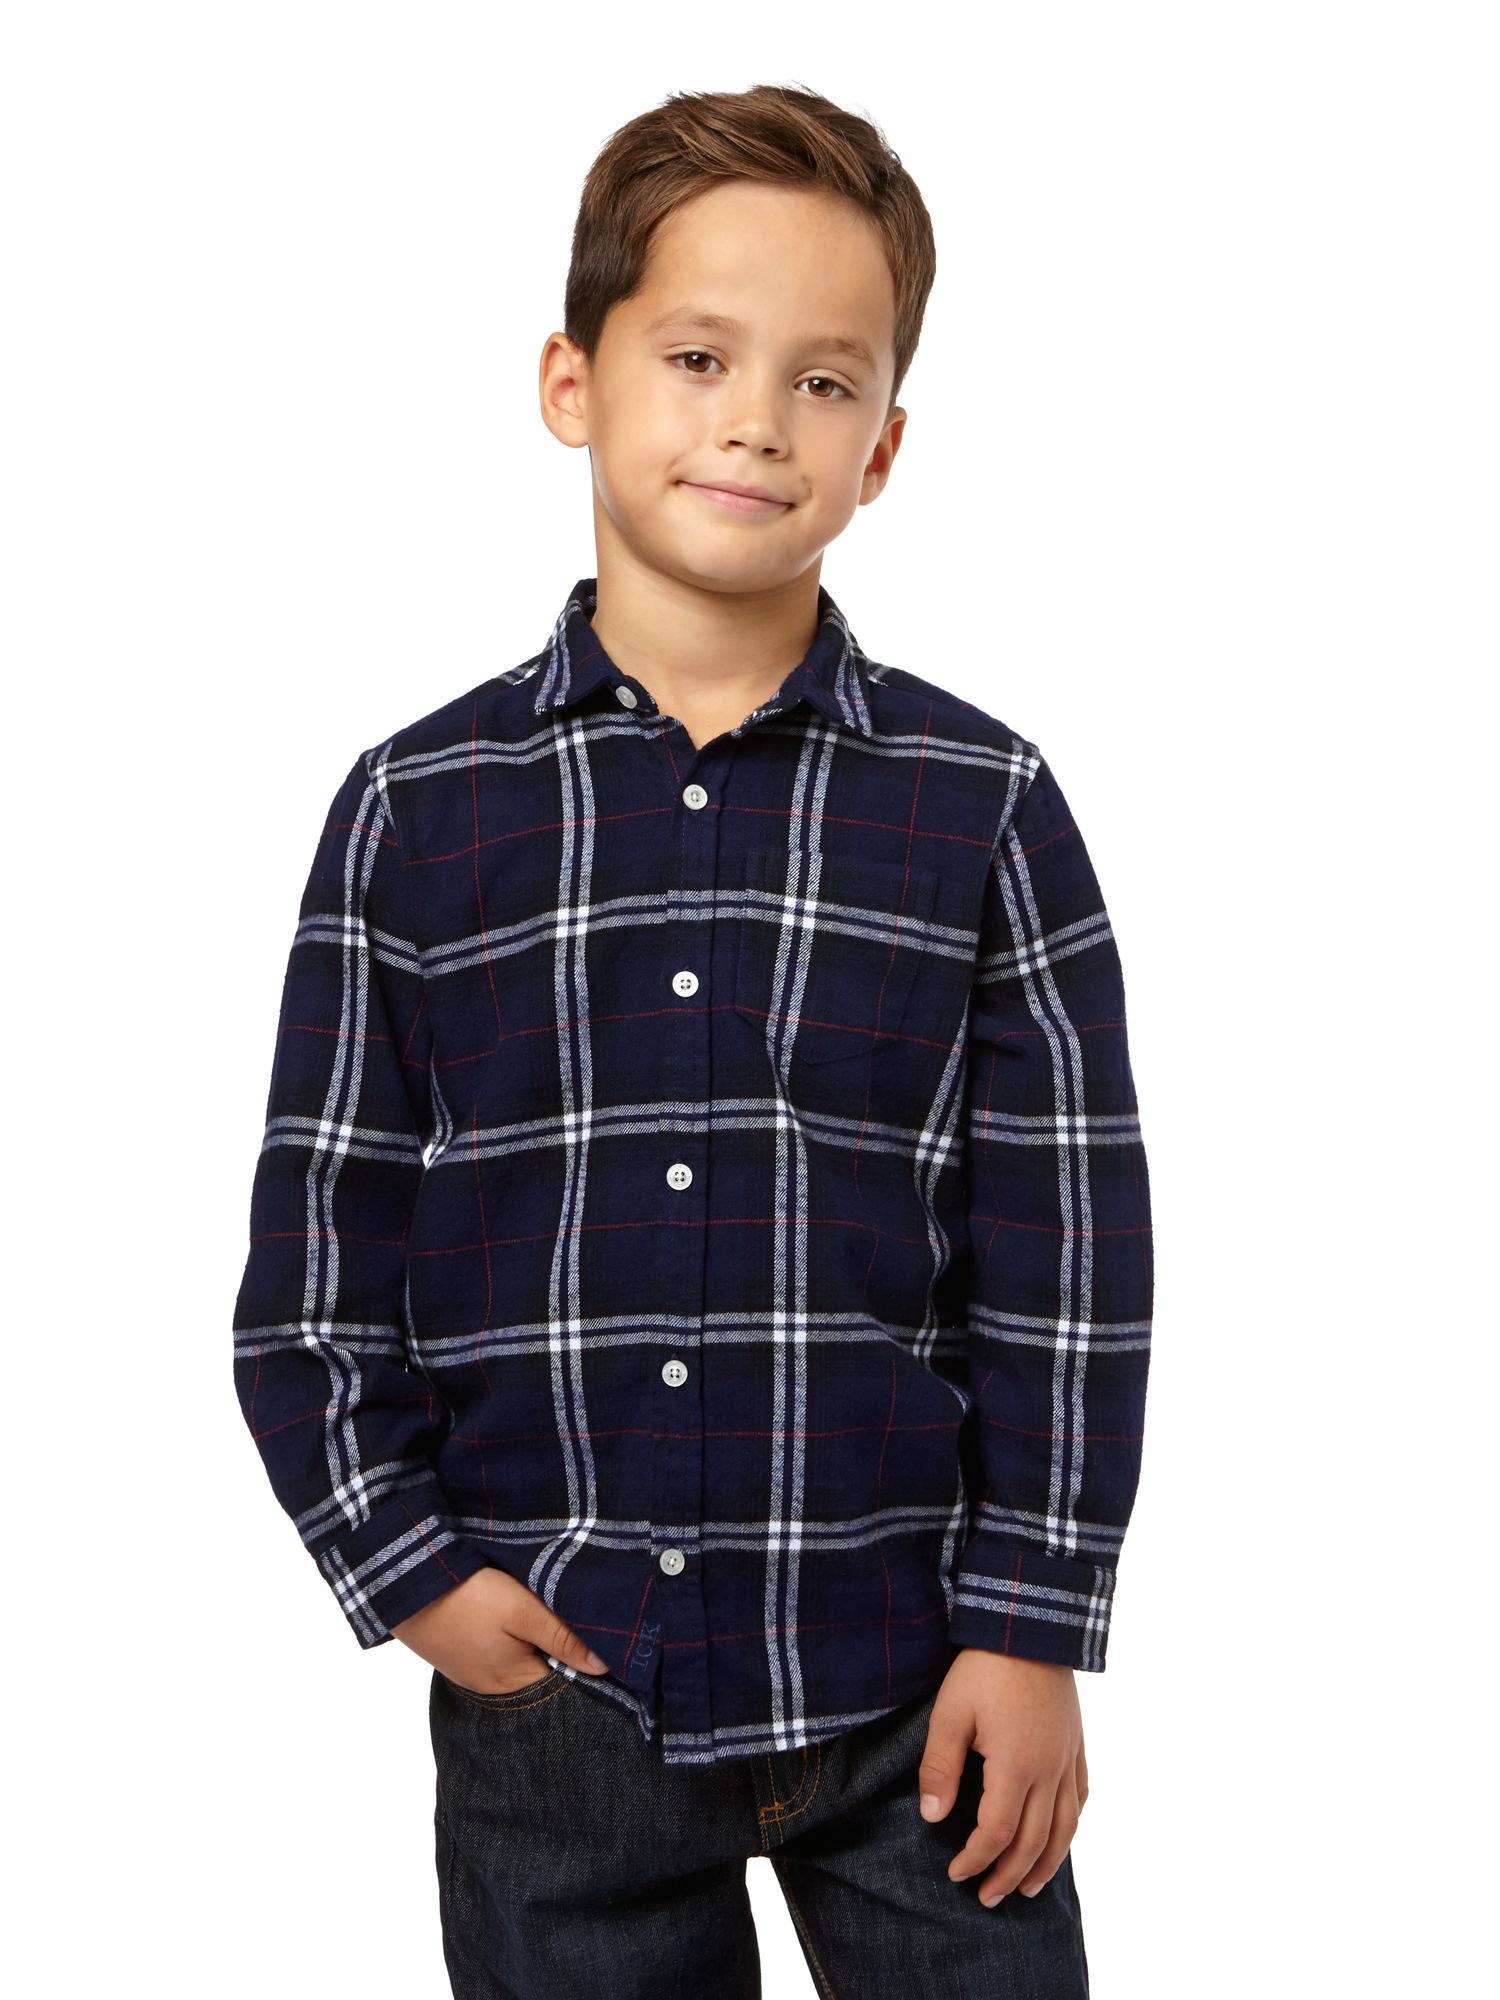 Boys jumbo check shirt